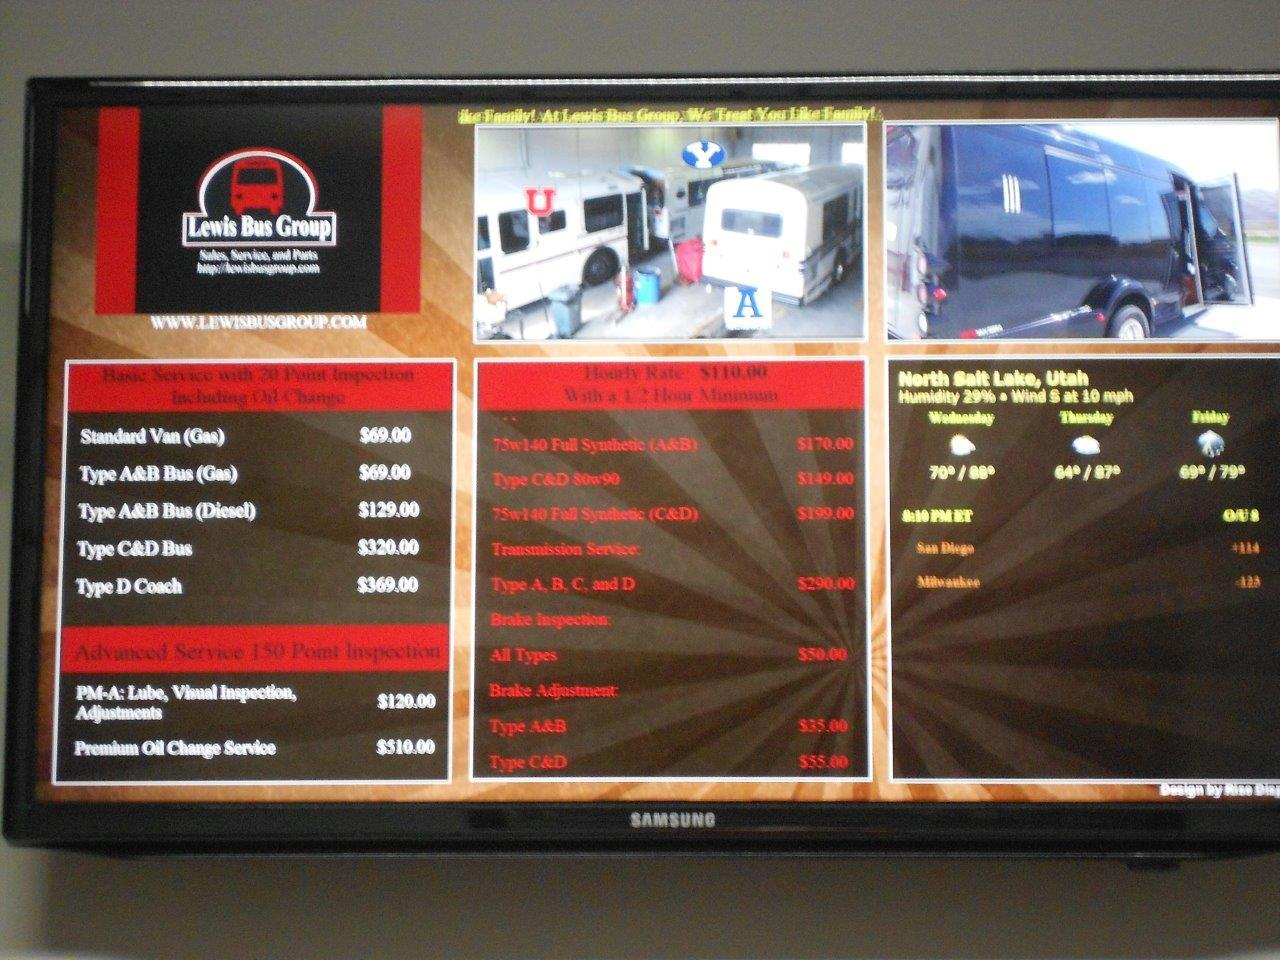 Lewis-bus-group-digital-signage-3-2.jpg